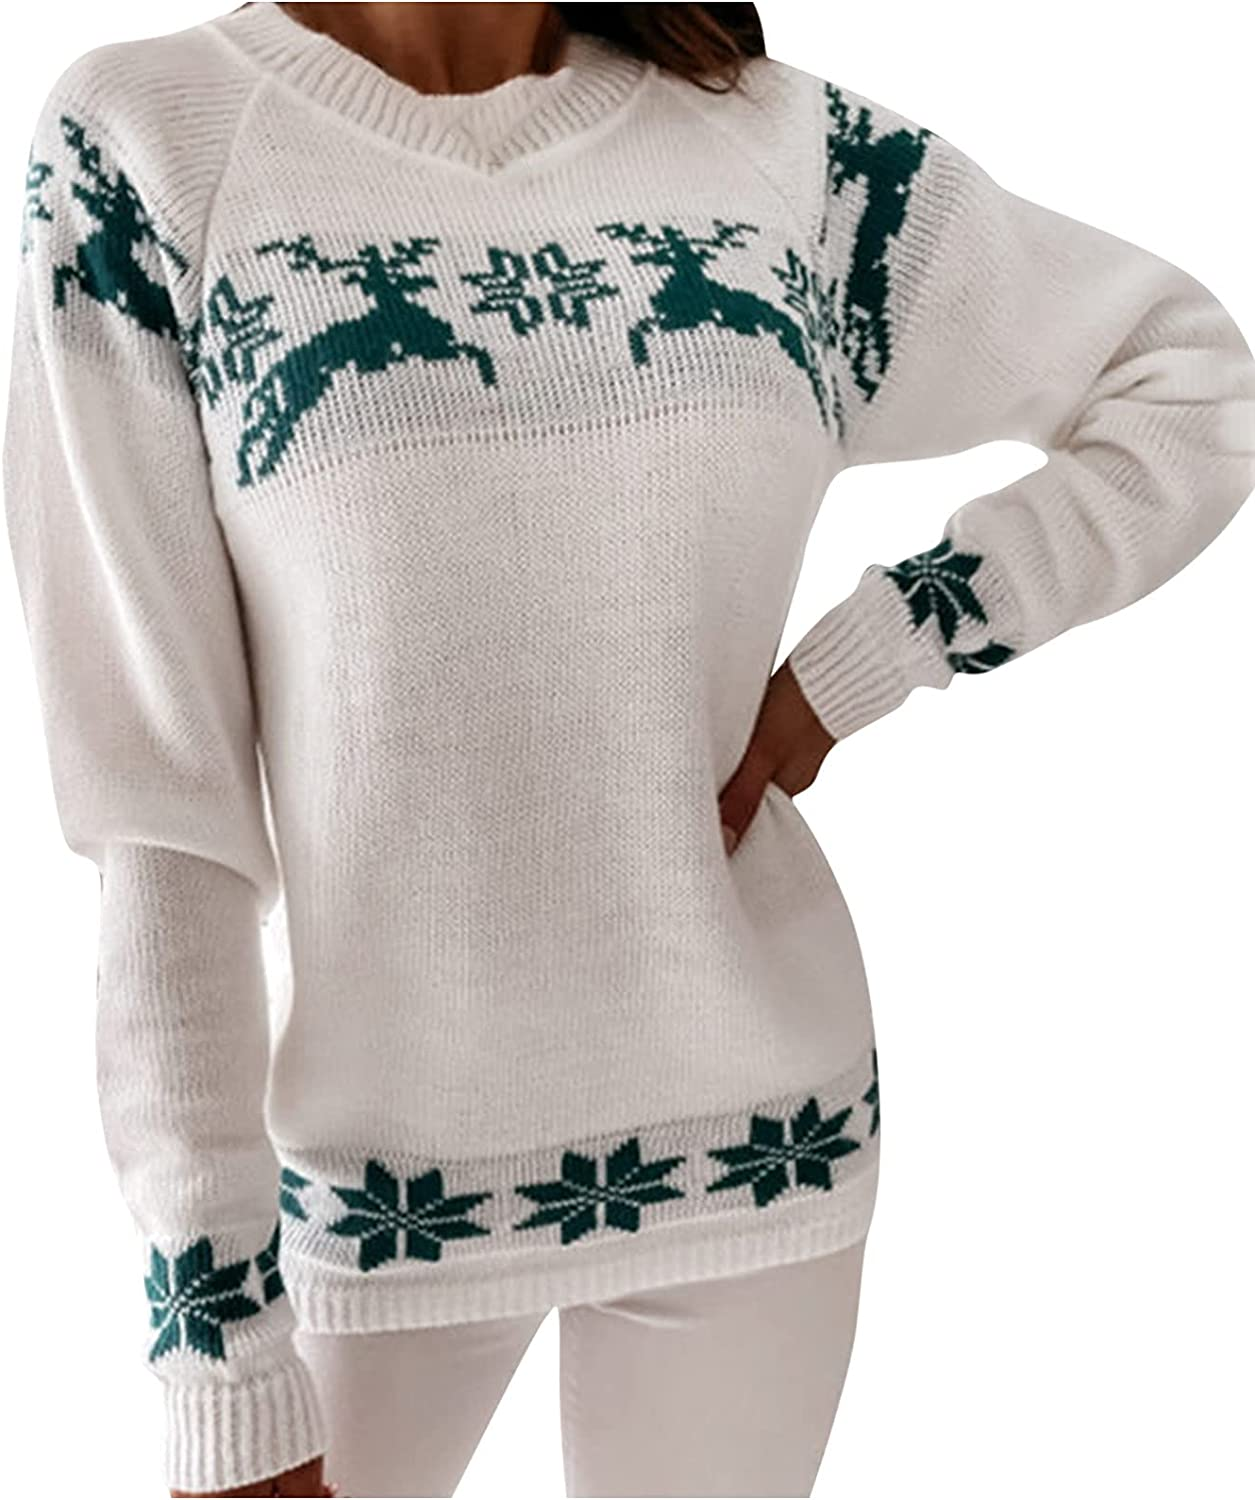 RFNIU Womens Christmas Red Sweater Fashion Graphic Long Sleeve Pullover Knit Sweaters Casual Comfy Shirt Bluses Tops